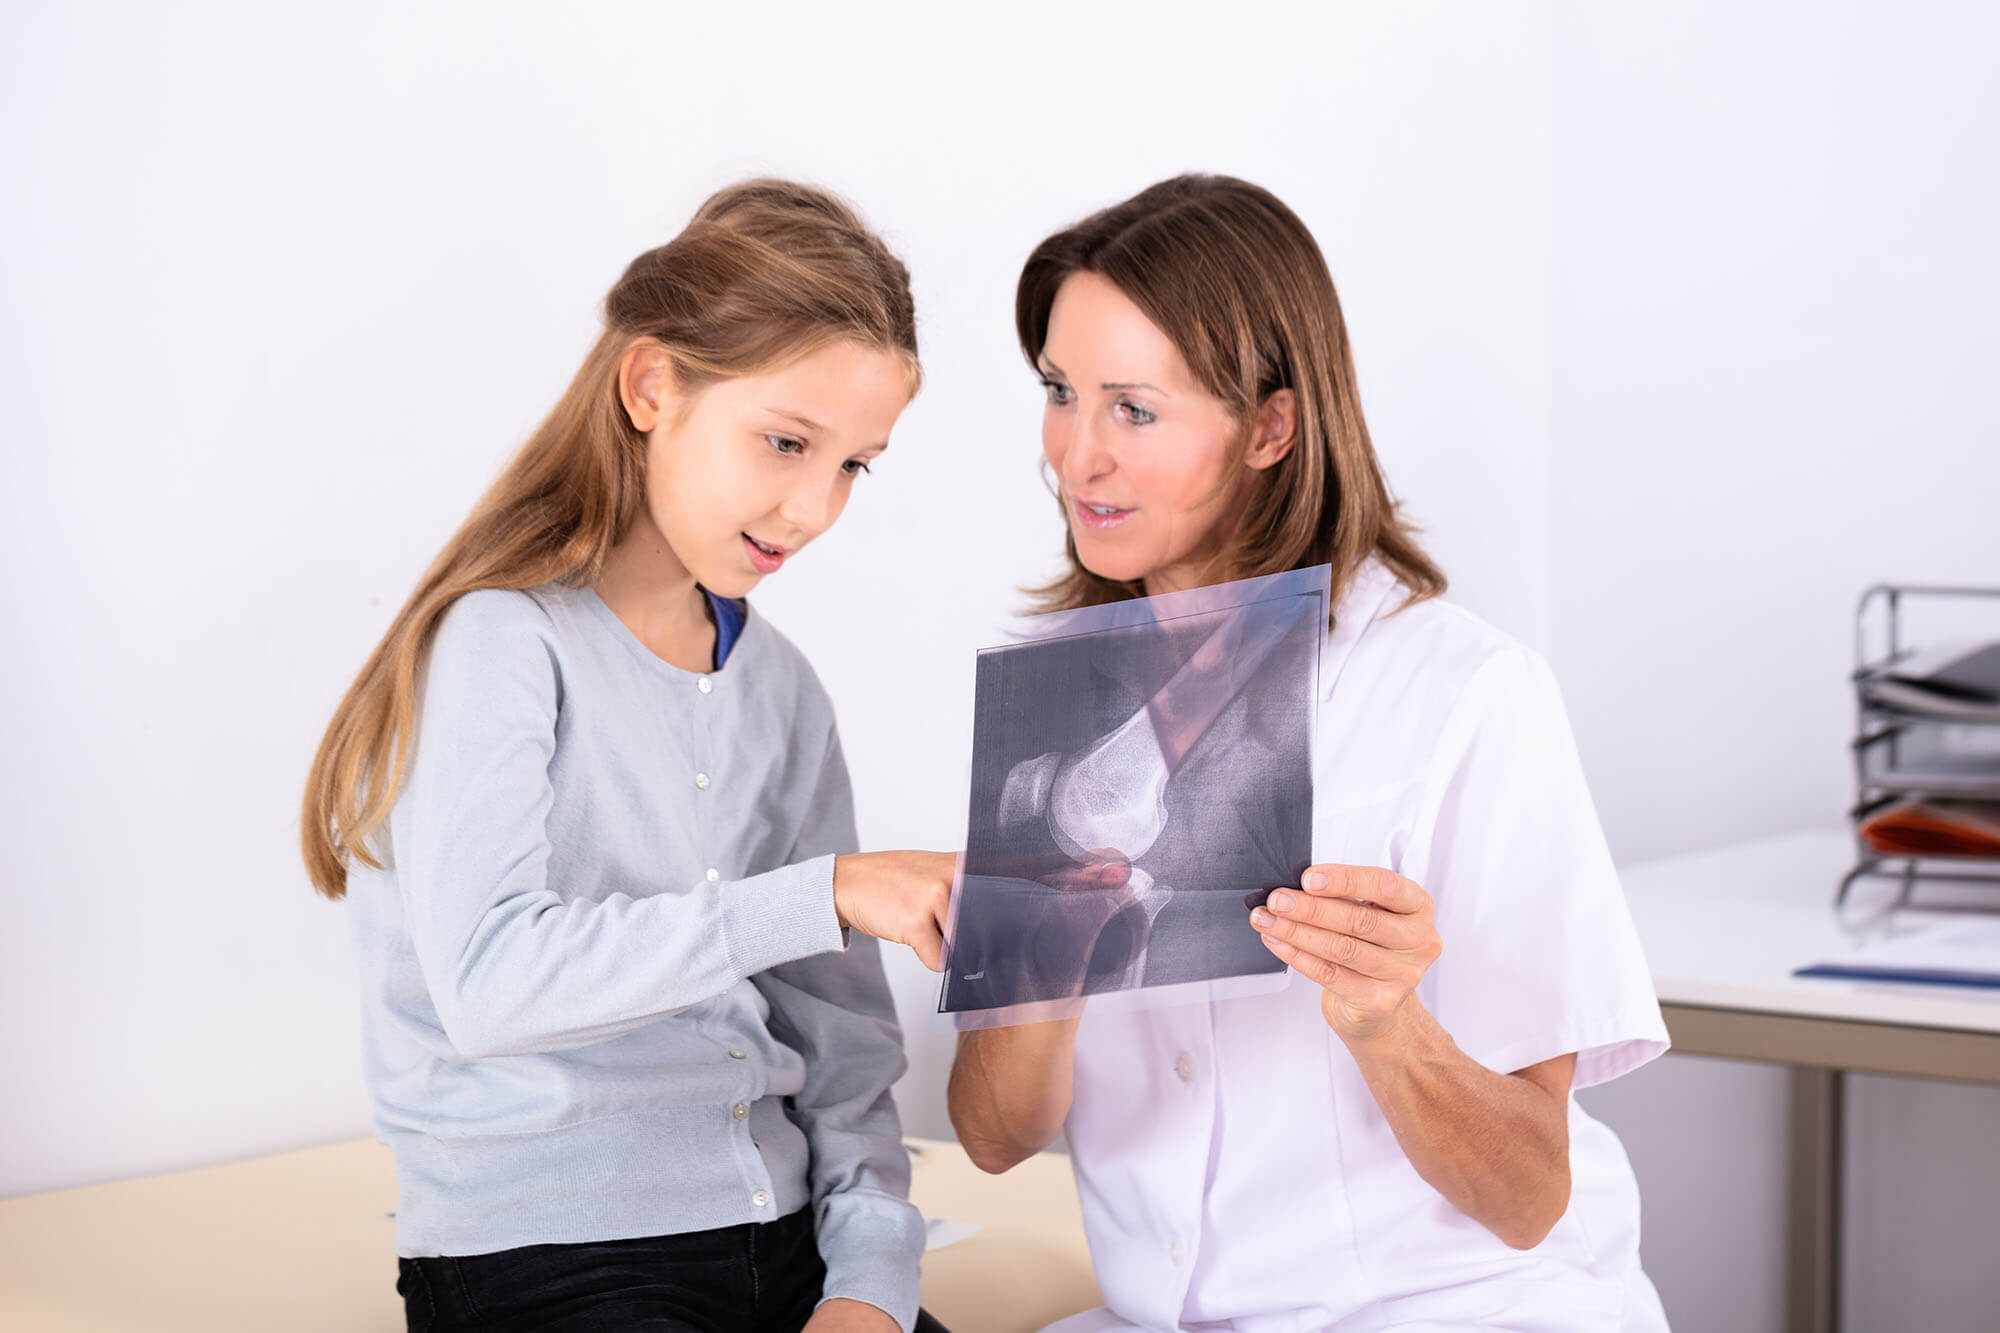 patient centred care diagnostic radiography lady with girl